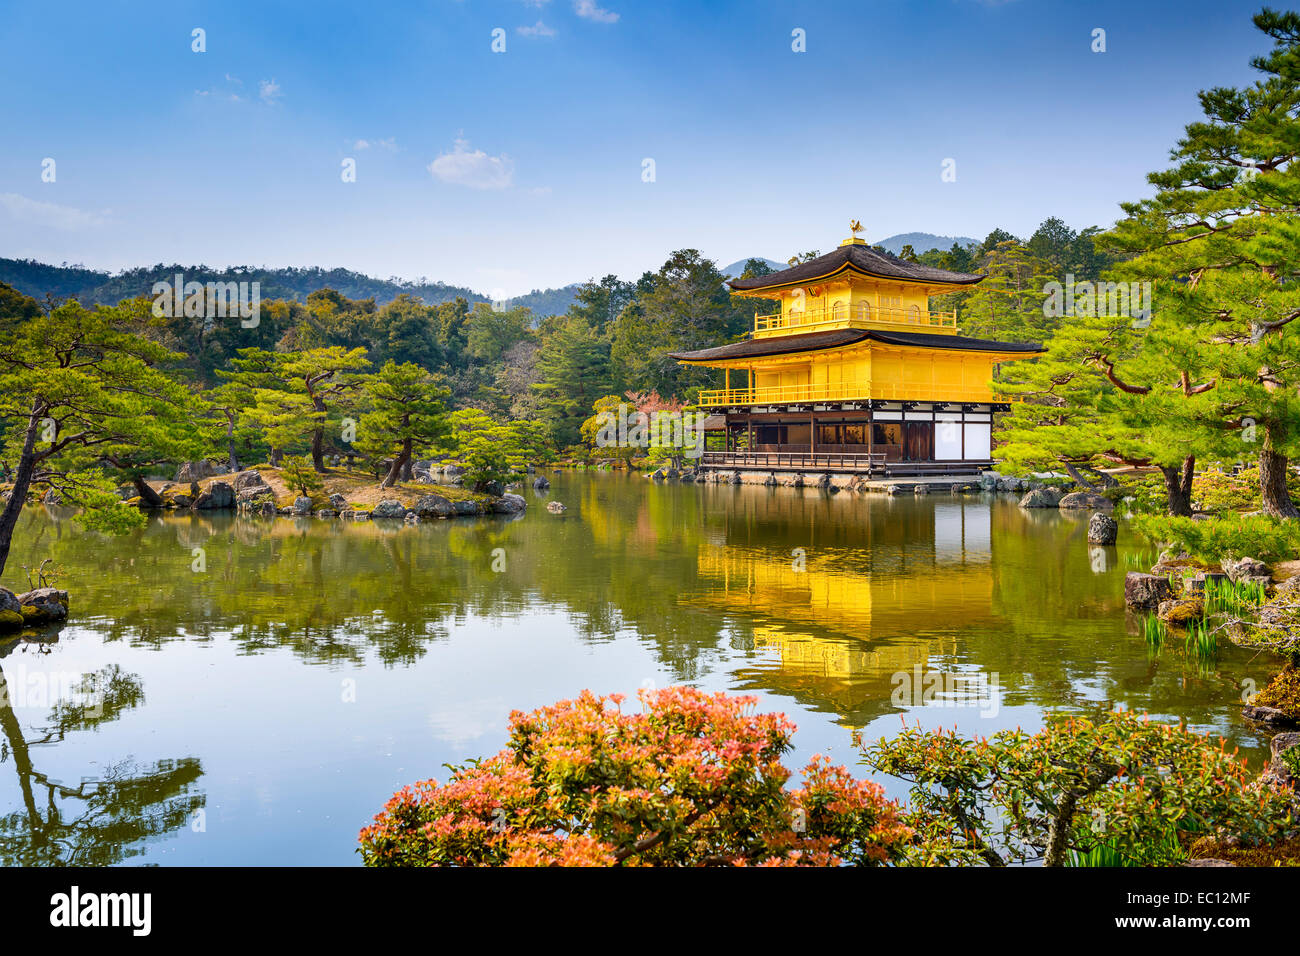 Kyoto, Japan at Kinkaku-ji Temple of the Golden Pavilion. - Stock Image